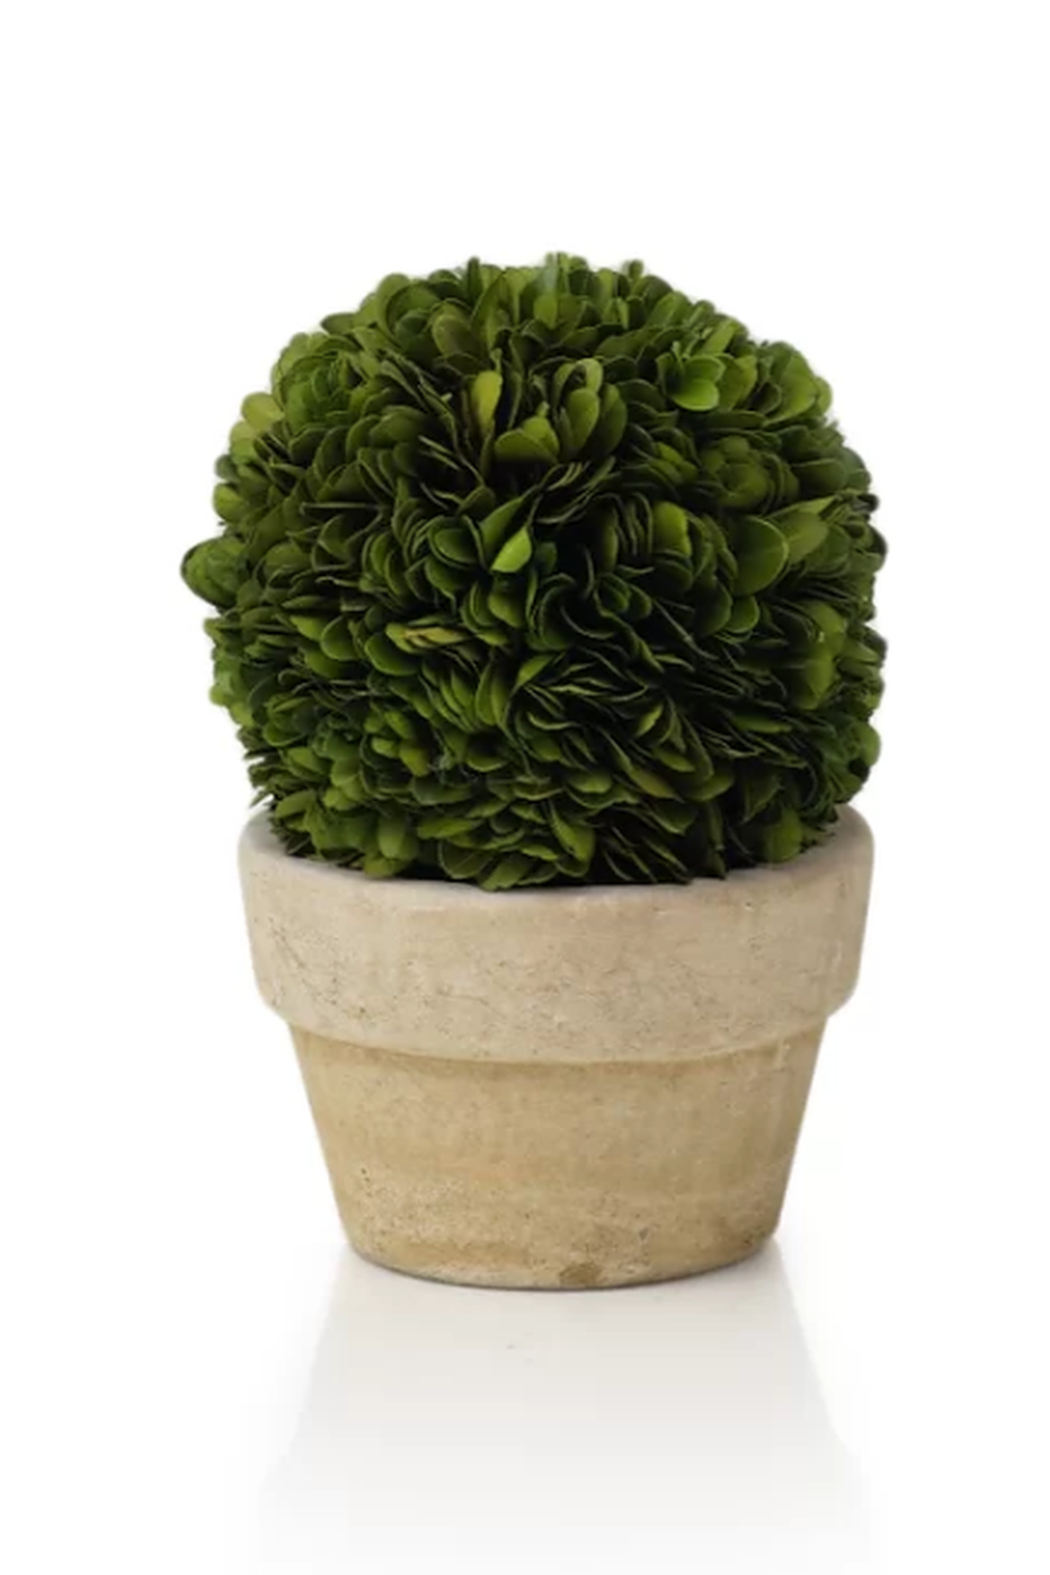 The Birds Nest BOXWOOD POTTED BALL - 7 INCHES - Main Image